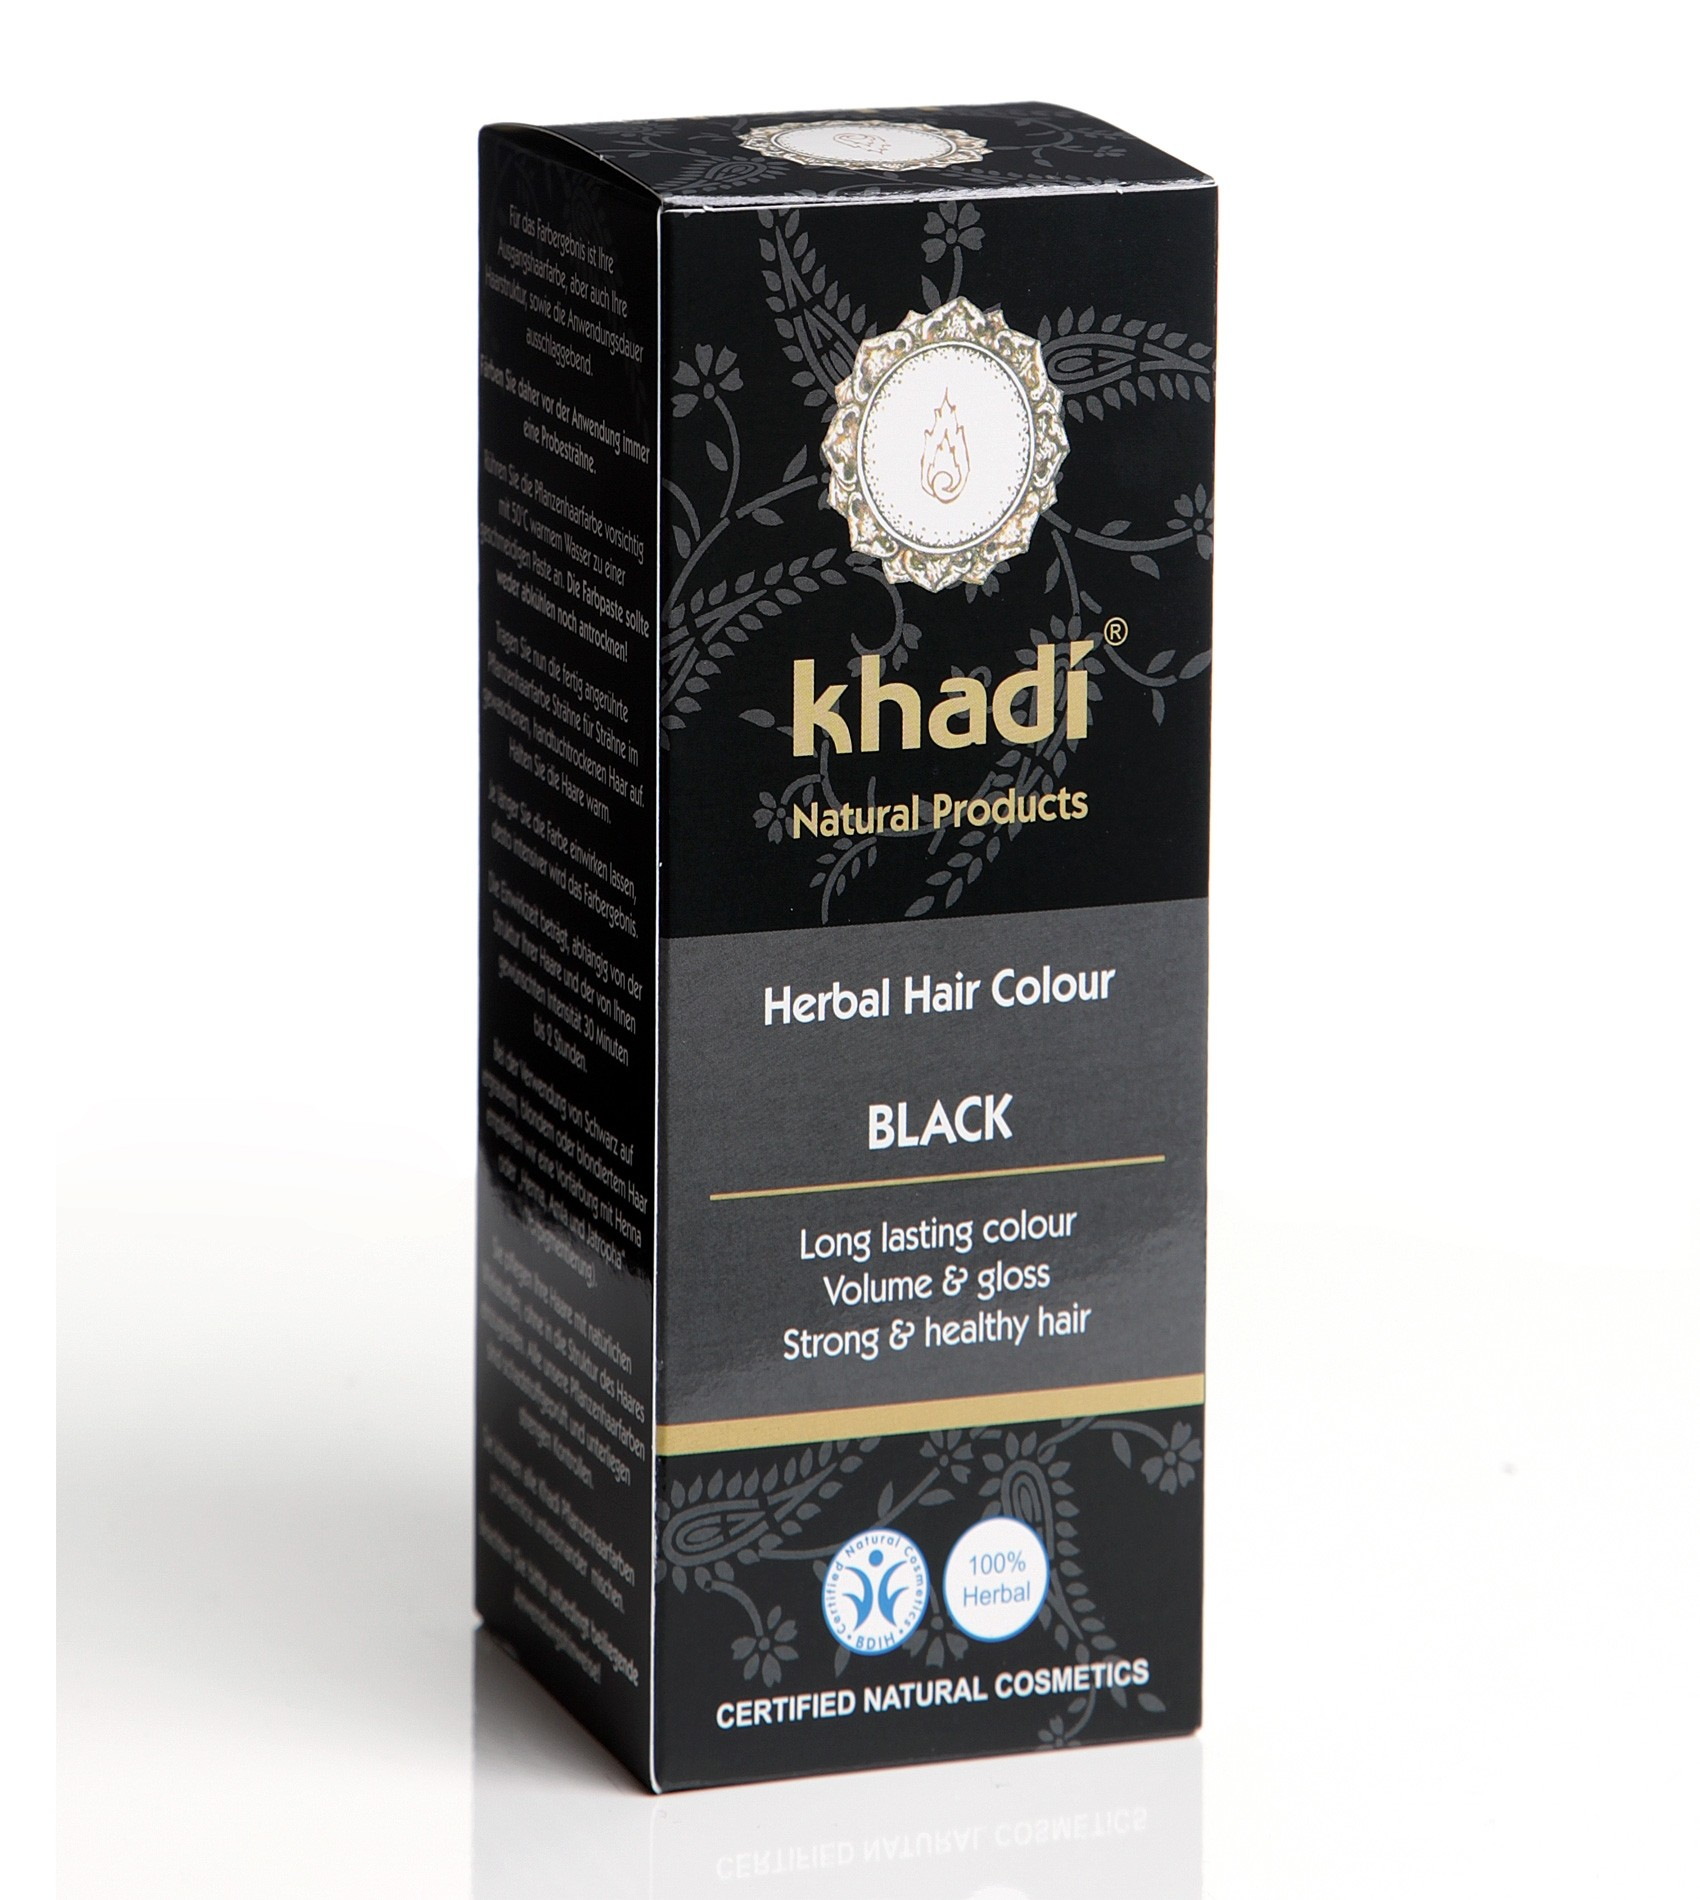 Khadi Herbal Hair Colour Black